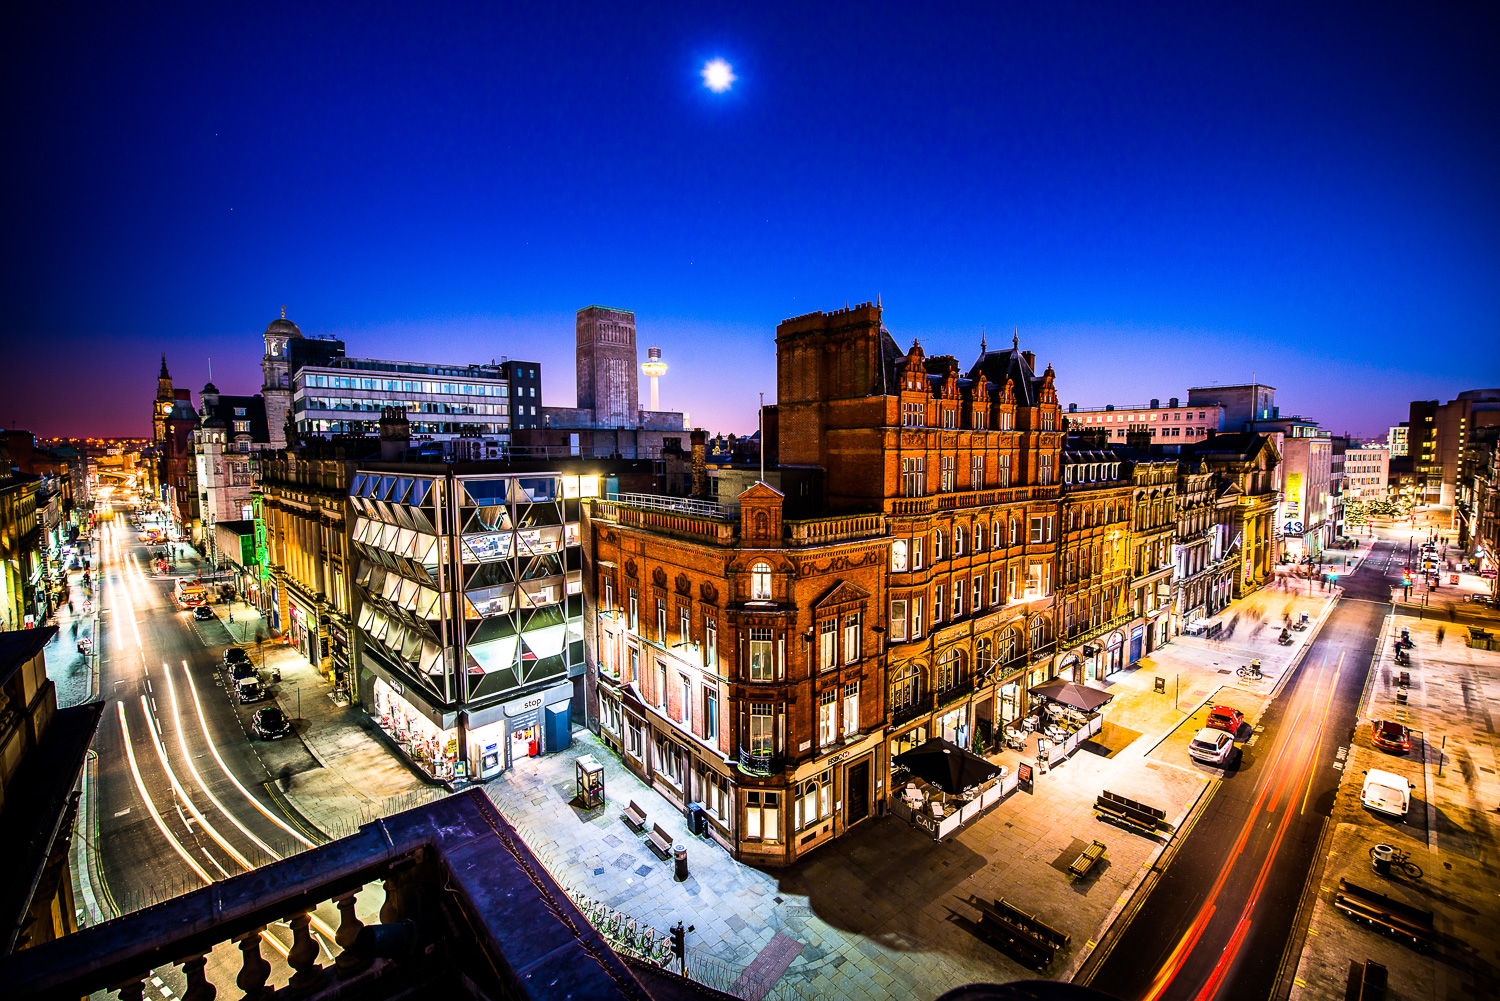 Some Night Photography For The Liverpool Commercial District Bid Company Ant Clausen Photography